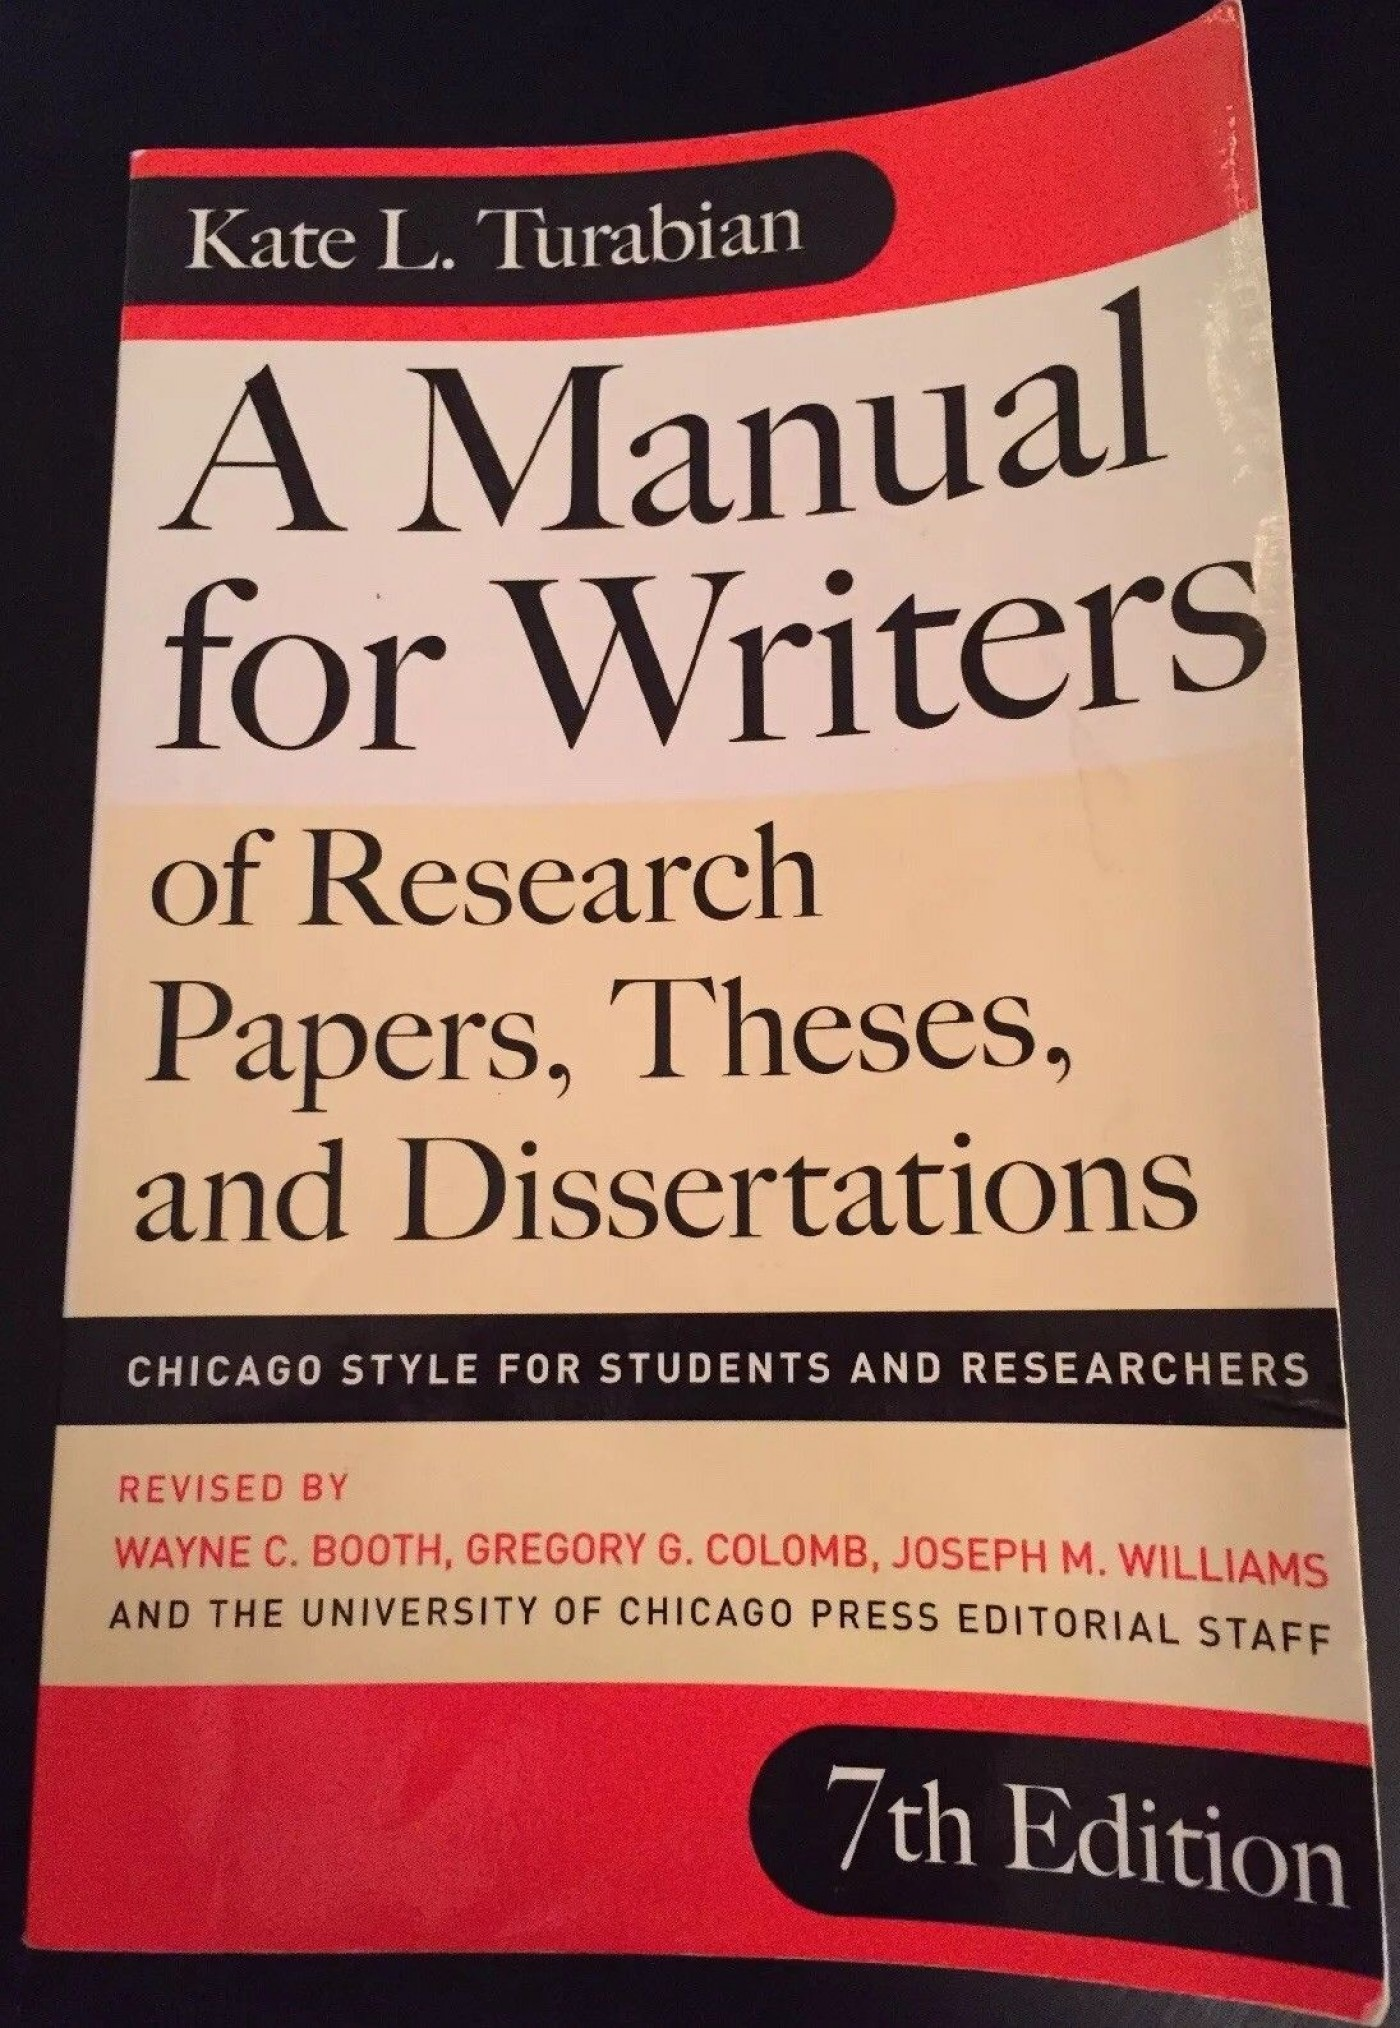 028 Research Paper Manual For Writers Of Papers Theses And Dissertations Turabian S Amazing A Pdf 1400